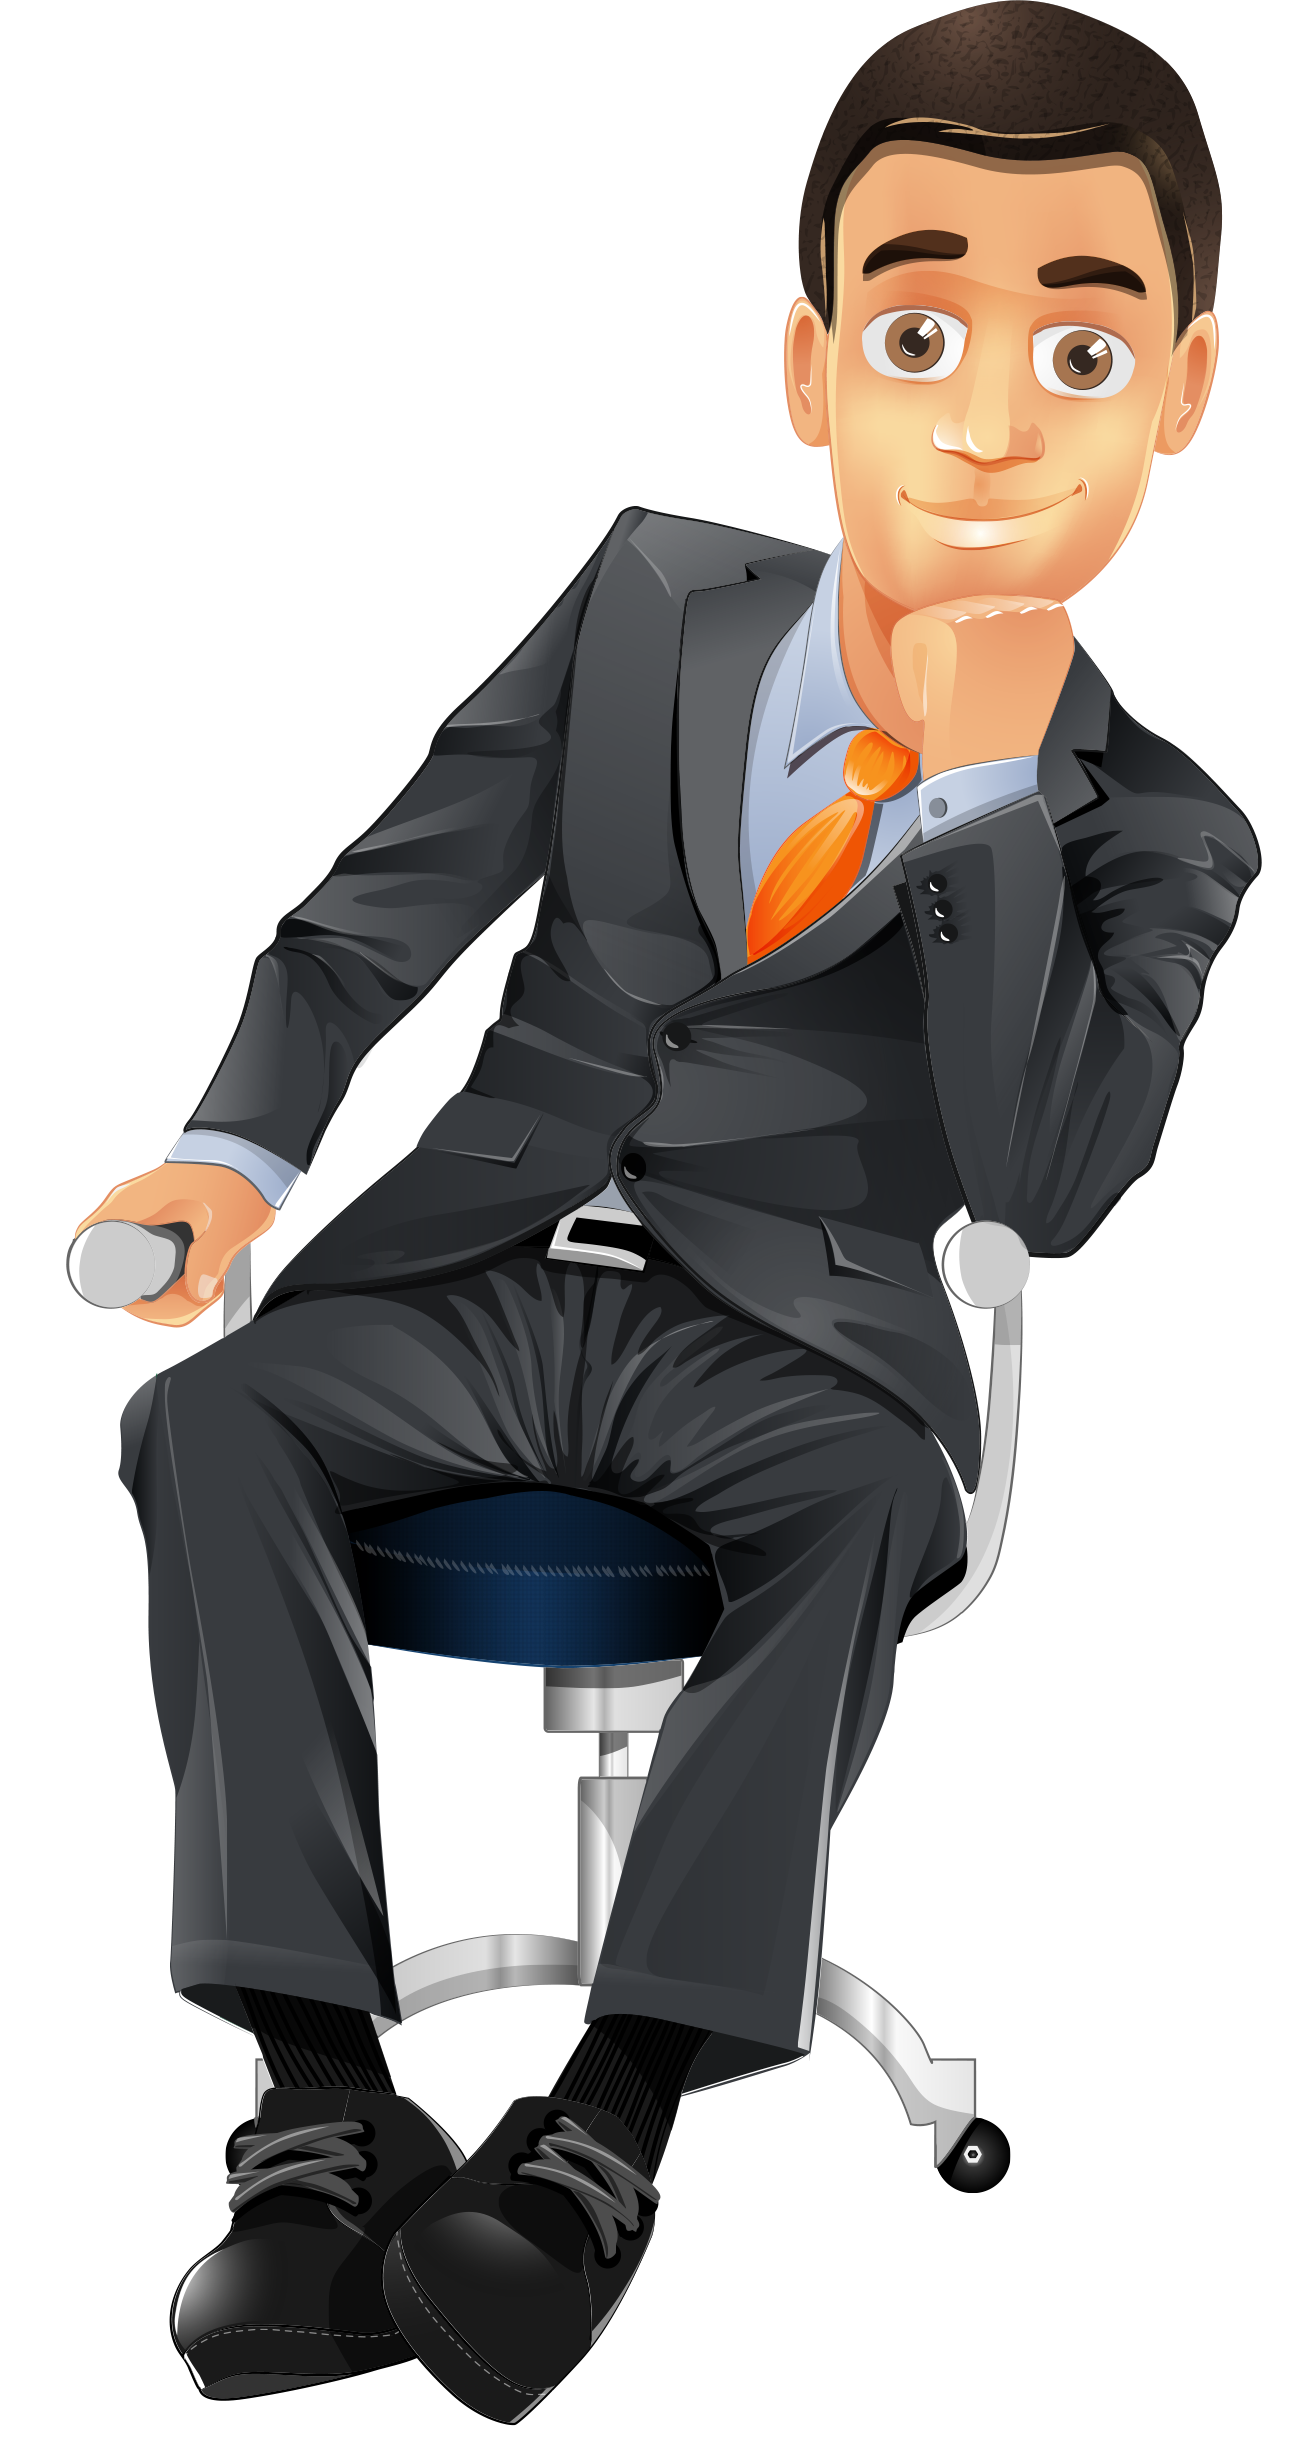 Transparent suit person sitting clipart clipart download Sitting Man PNG Image - PurePNG | Free transparent CC0 PNG ... clipart download